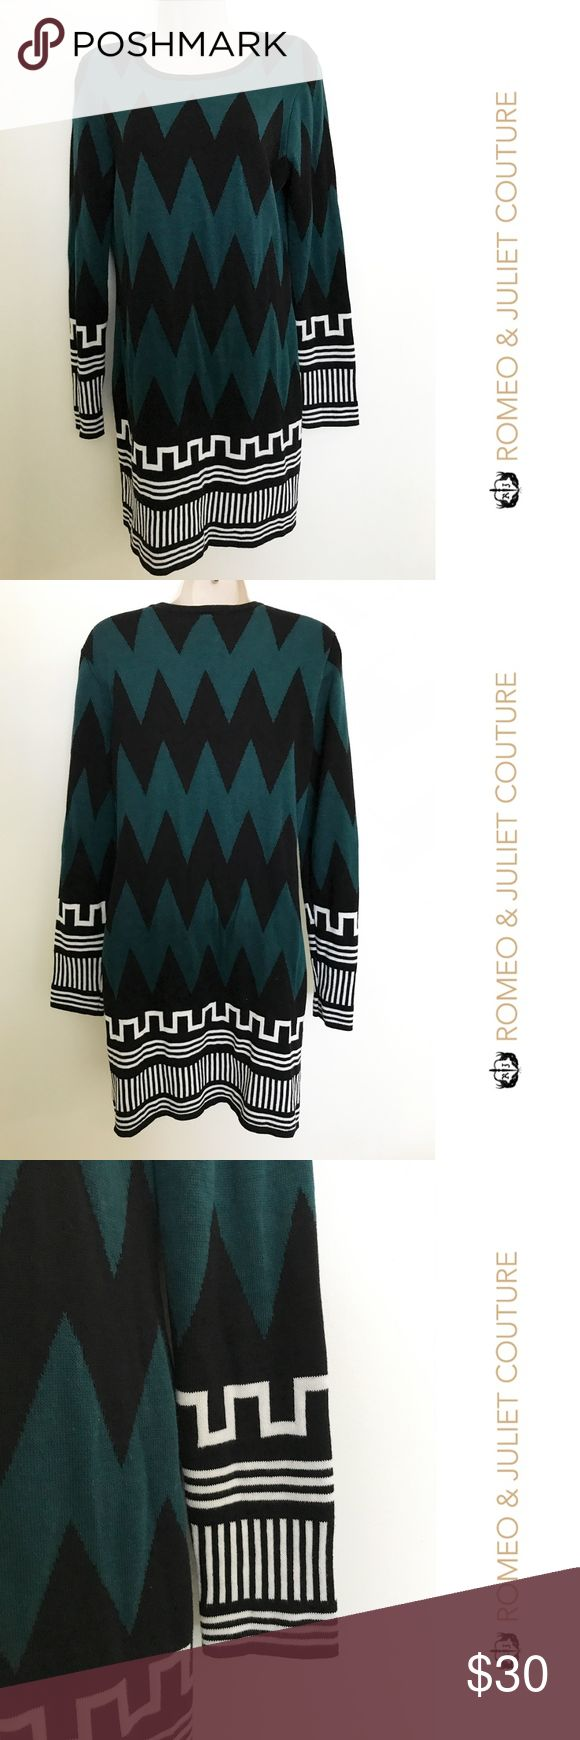 """Romeo + Juliet Couture chevron print dress - Large Very cute and in excellent condition. Great for Fall!  Measurements: Bust: 18.5"""" pit to pit Length: 33"""" Romeo & Juliet Couture Dresses Long Sleeve"""